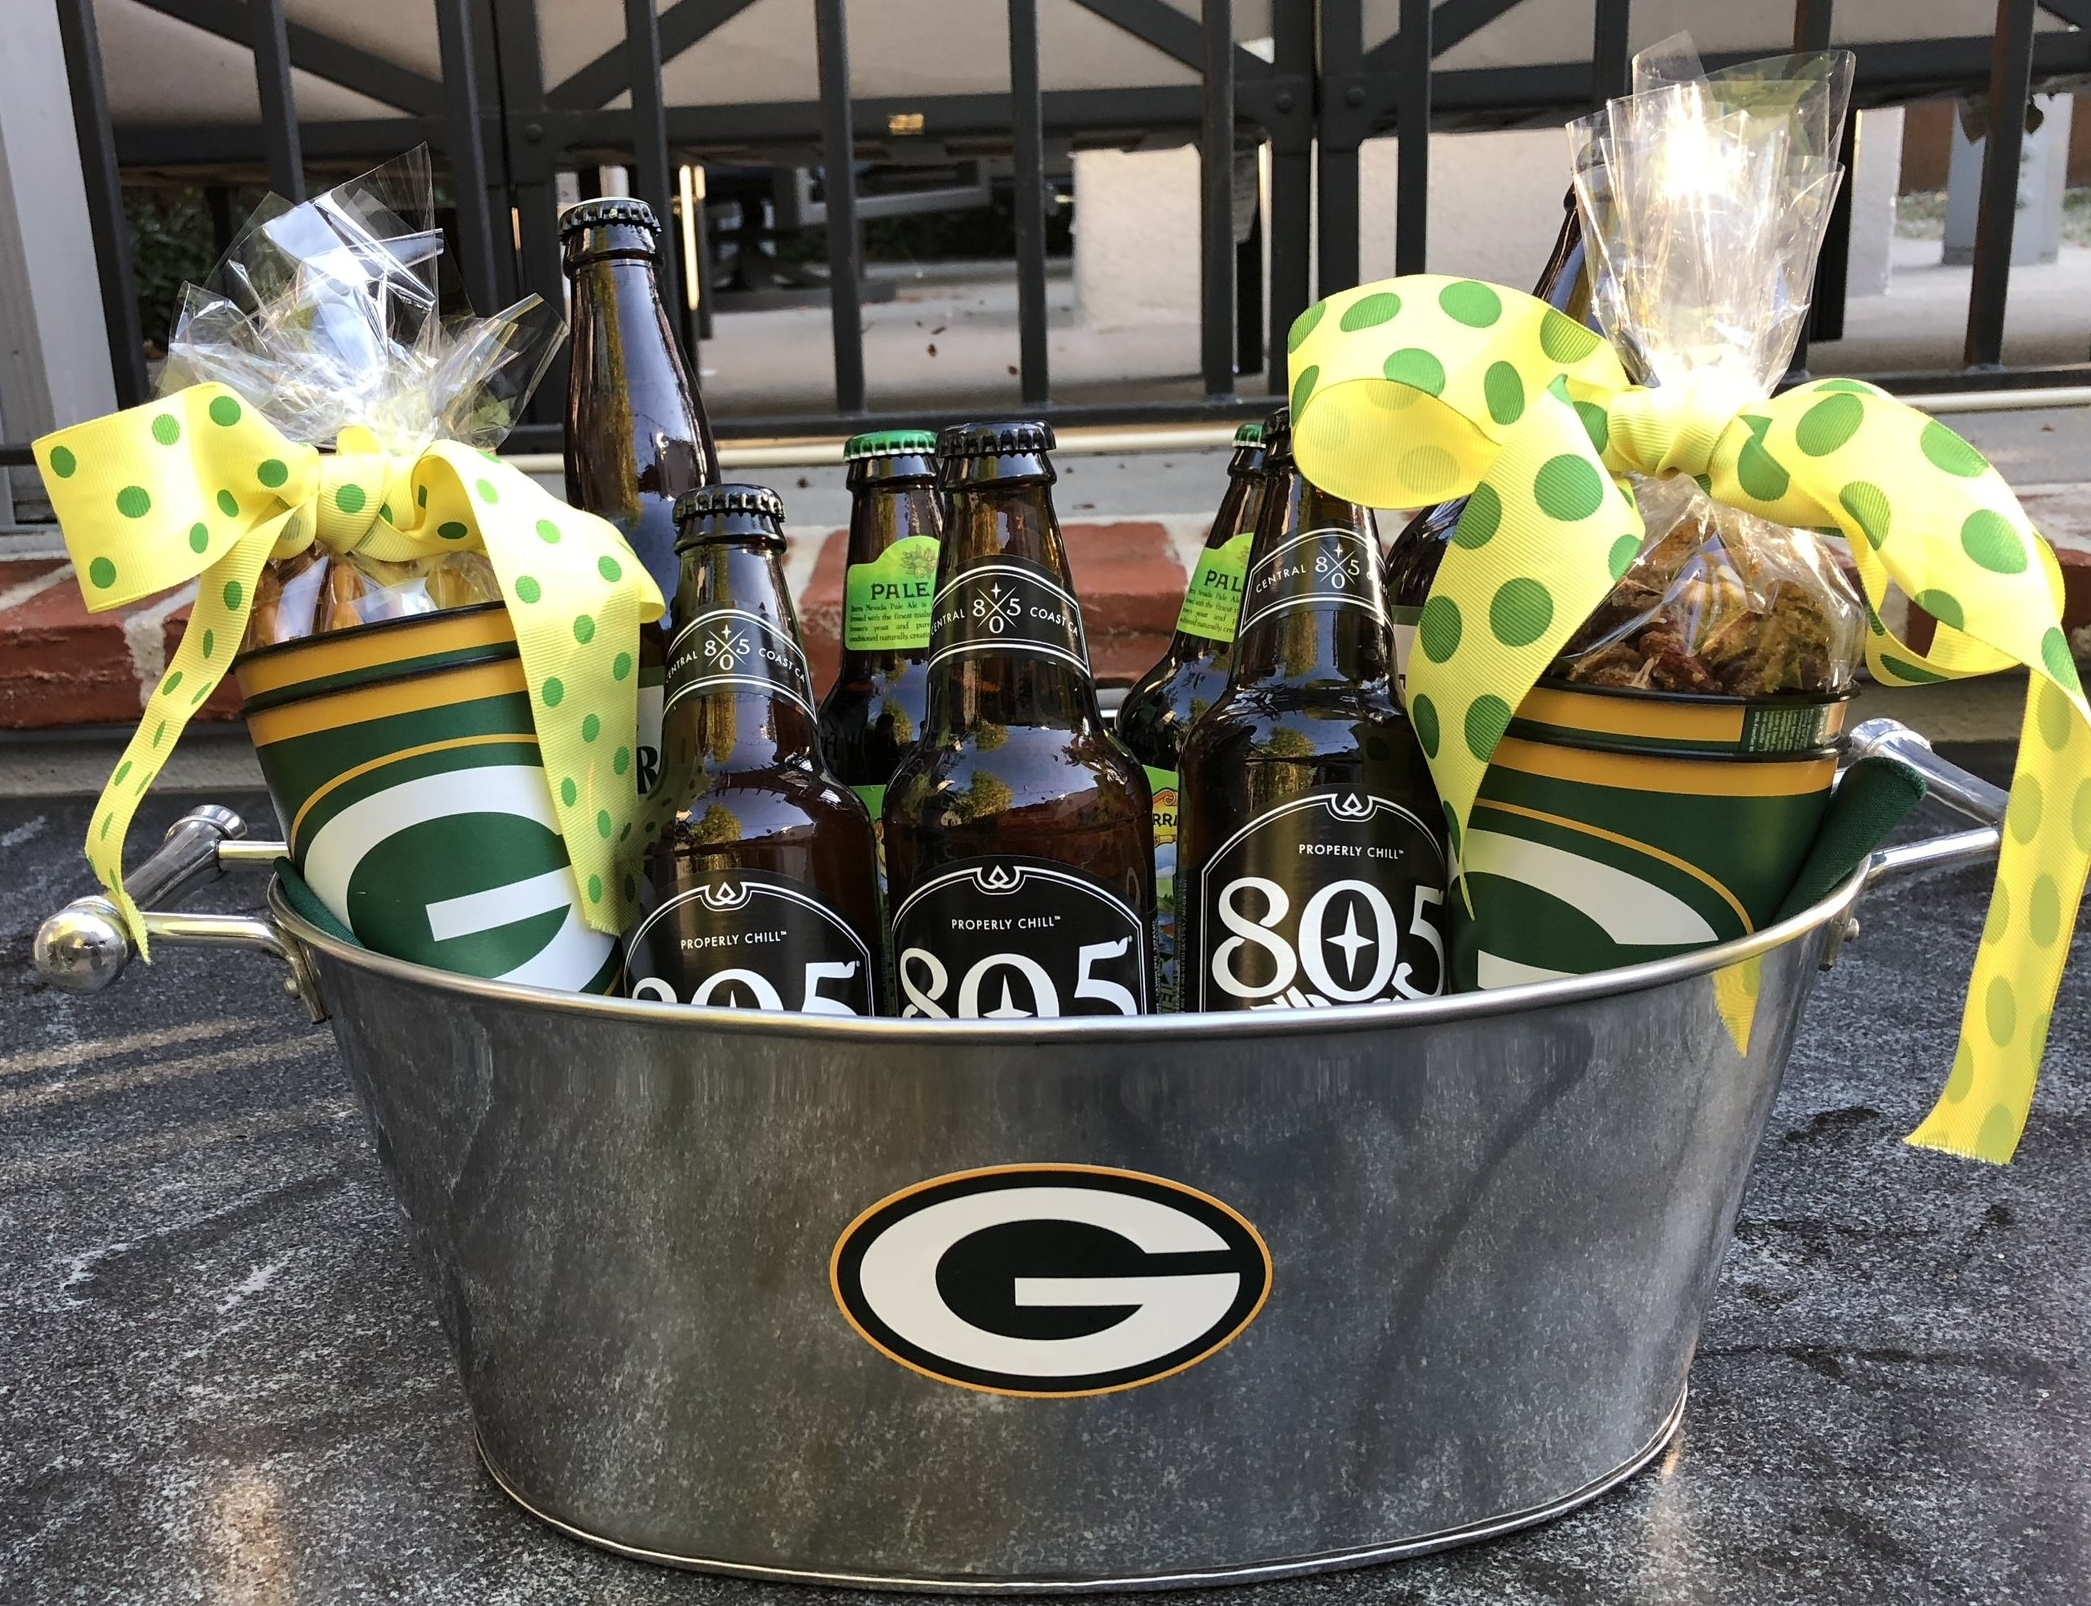 Pick a team and you have a holiday gift that is ready for the big game.